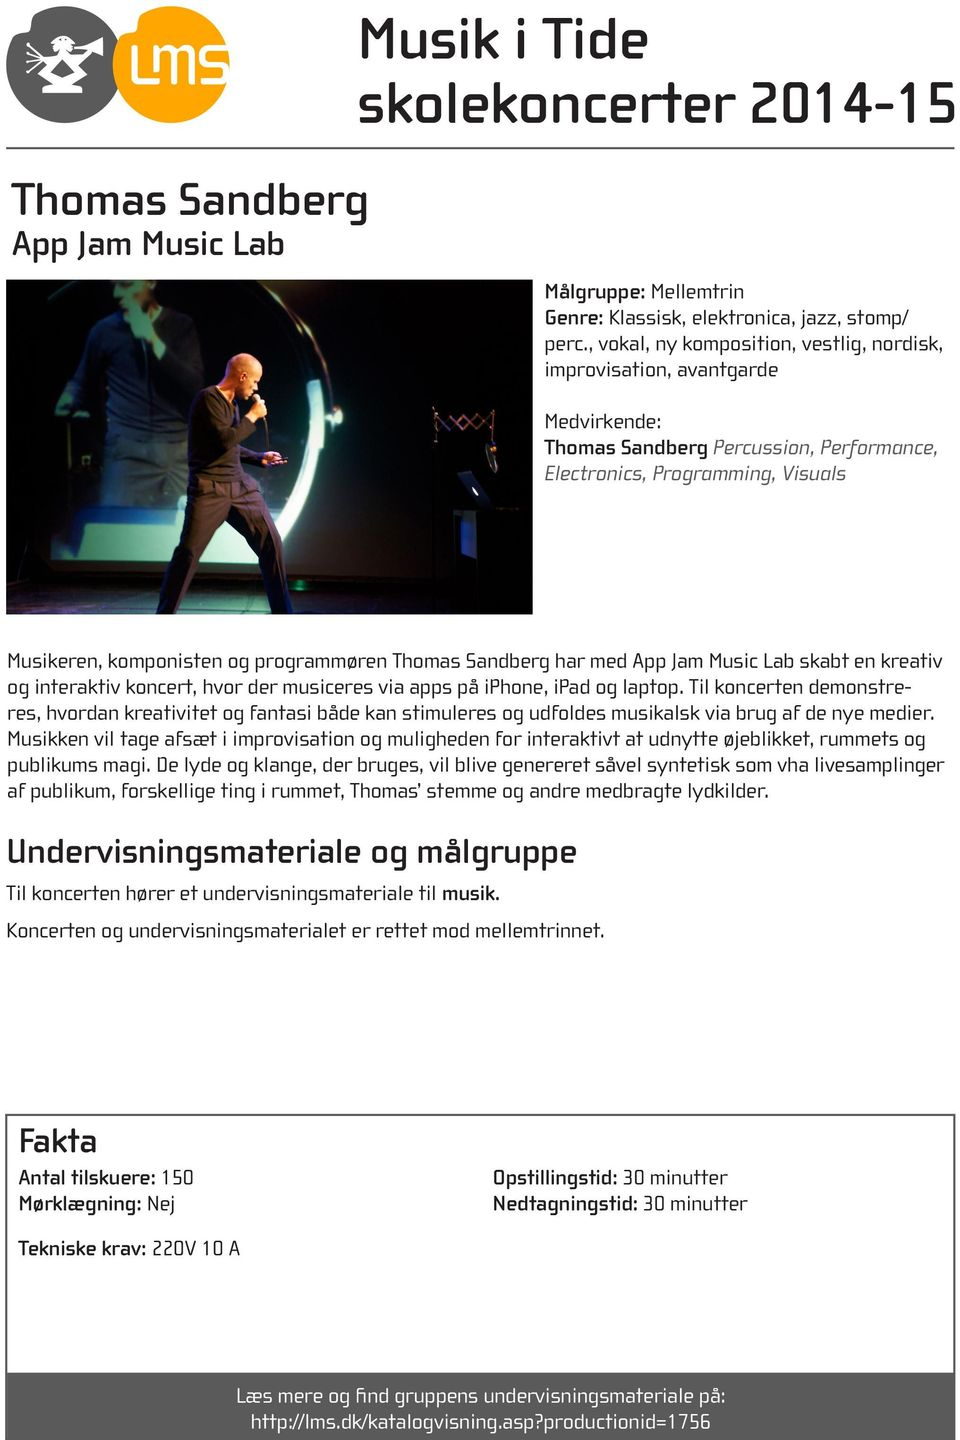 har med App Jam Music Lab skabt en kreativ og interaktiv koncert, hvor der musiceres via apps på iphone, ipad og laptop.